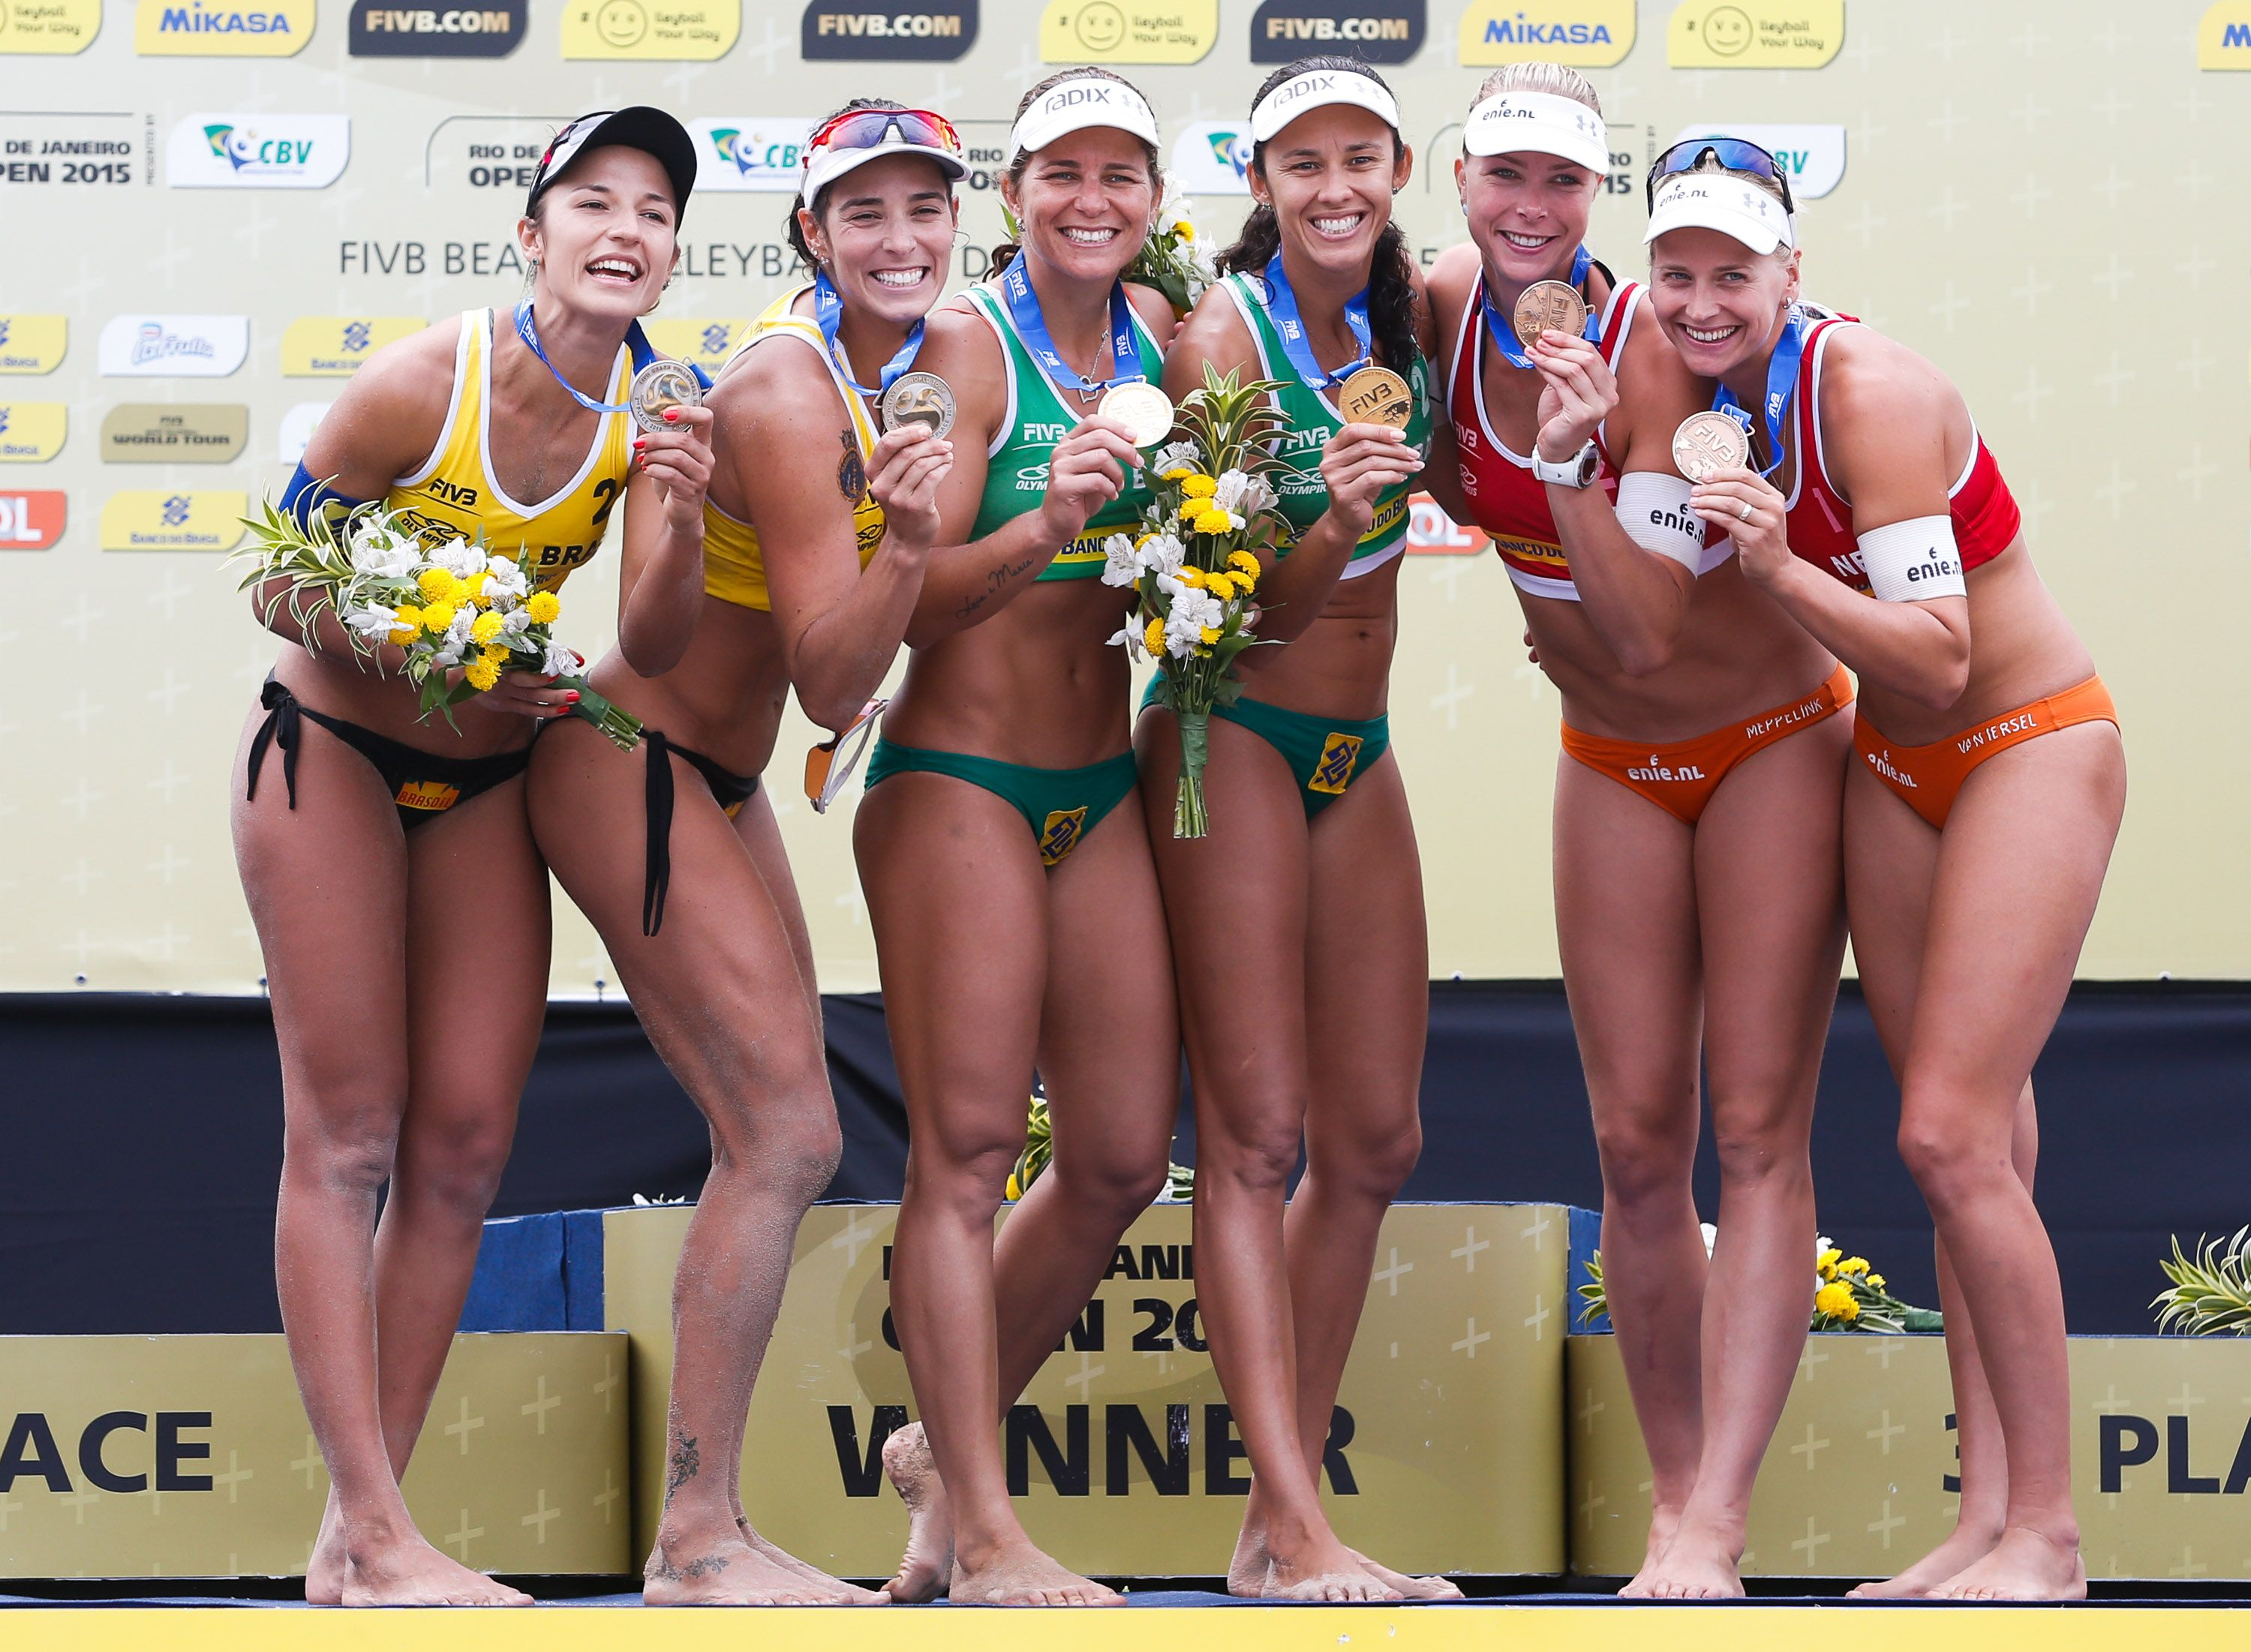 Newly Named Brazilian Beach Volleyball Olympic Team Validates Rio 2016 Berth Beach Volleyball Olympic Team Volleyball